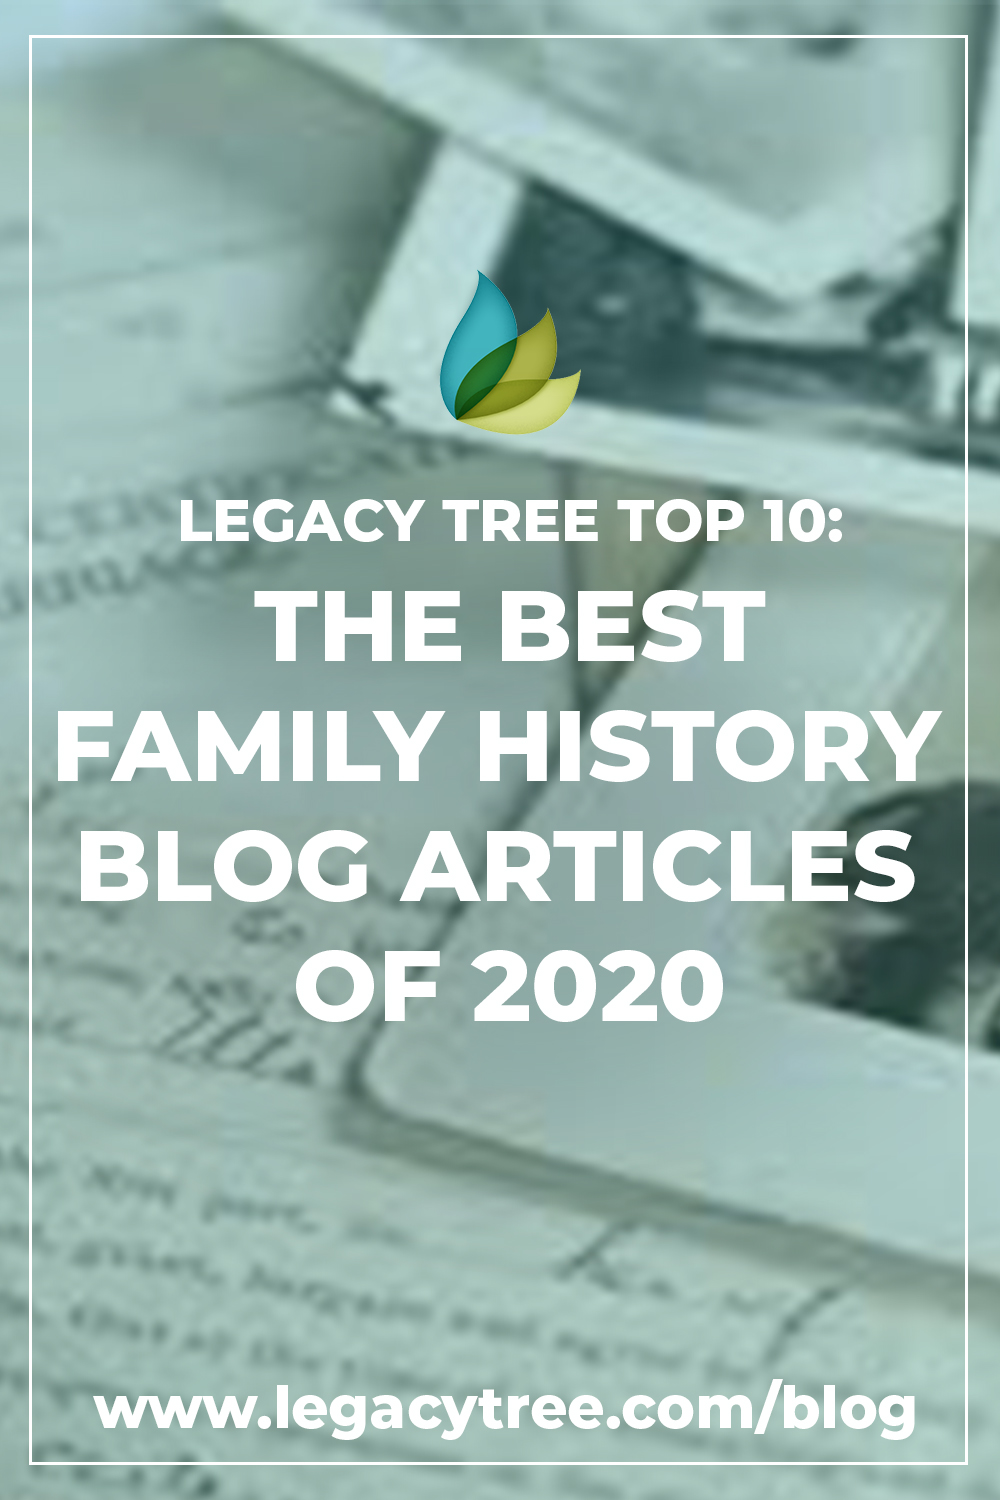 Another year has come and gone, and what a year it has been! Before we usher 2020 out the door, we want to share our countdown of the best family history blog articles from the past year. Did your favorite make the list?